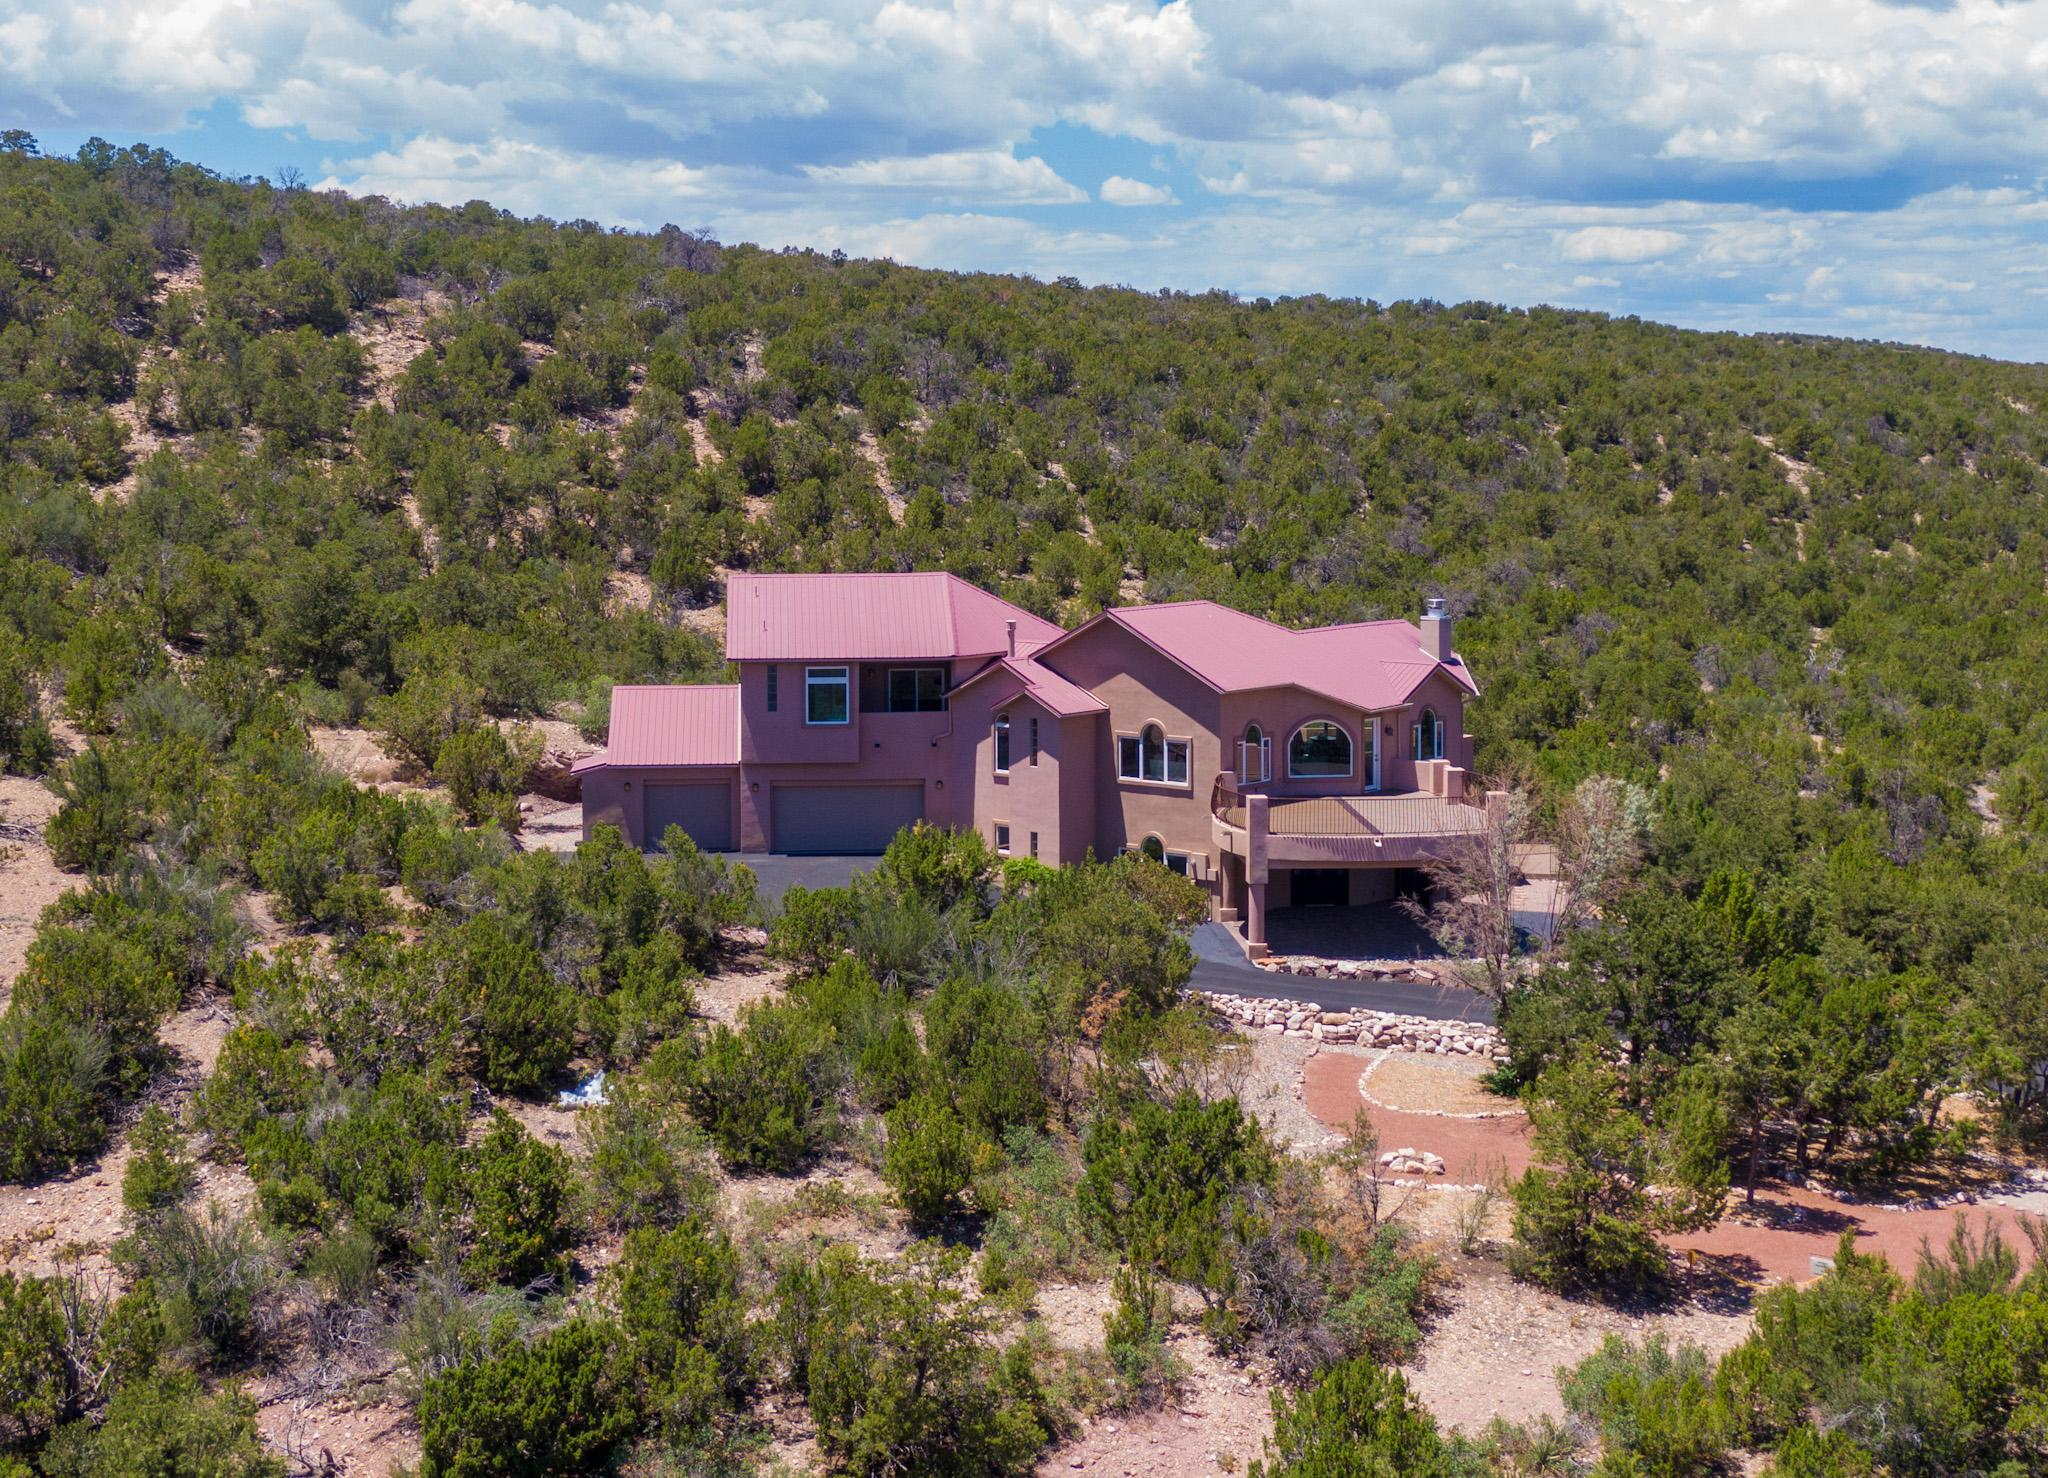 PRIVACY WITH TRUE LUXURY! Available for immediate occupancy! Please take the virtual tour! Looking for the perfect New Mexico  retreat? Only 12 minutes from retreat to  Interstate Highway 25, 45 minutes to the Albuquerque Sunport, 35 minutes to the Santa Fe airport. This beautiful home offers a tranquil and private mountain setting and is the last estate before the Cibola National Forest on two sides of the property. This truly unique home has a landscaped entrance, low light pollution for night skies and is nestled within 5 acres that lead into miles of National Forest and Sandia Crest hiking trails, surrounded by amazing views. 300 days of sunshine allow for stunning nightly sunsets and rainbows in the fall.  Prior to  entering this home, take a walk through the Native American Spirit